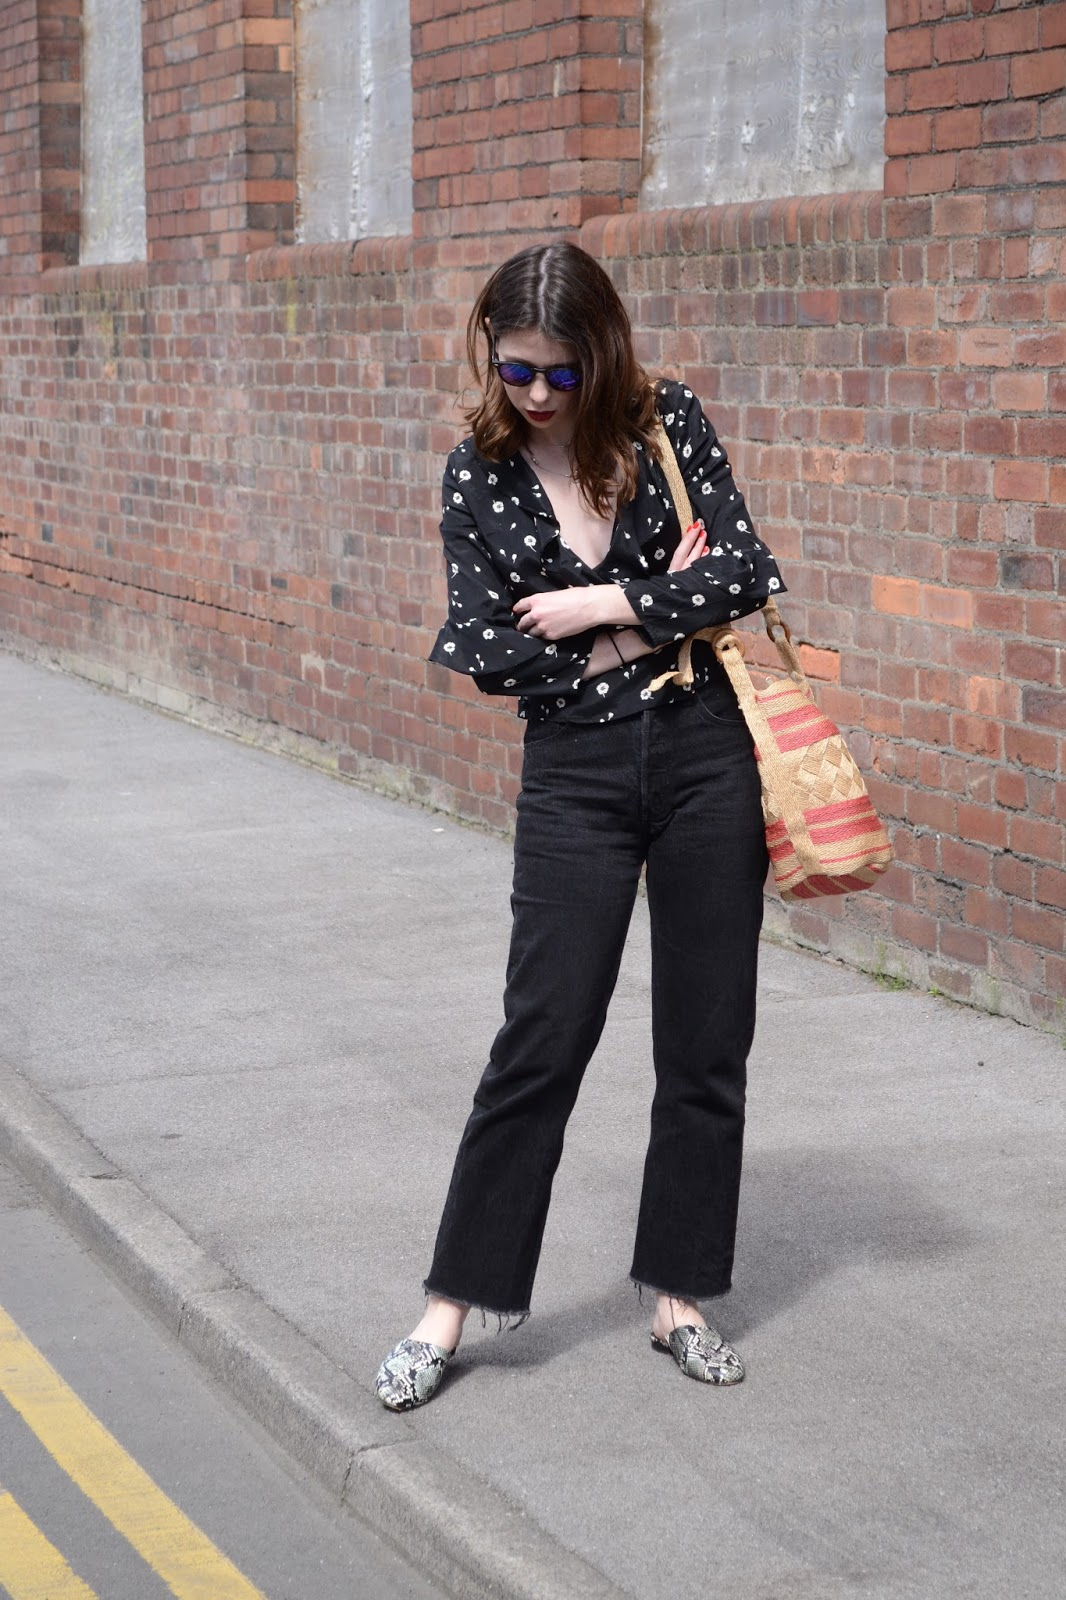 Black levis 501 mom jeans with black floral frill top from Topshop. Summer styling